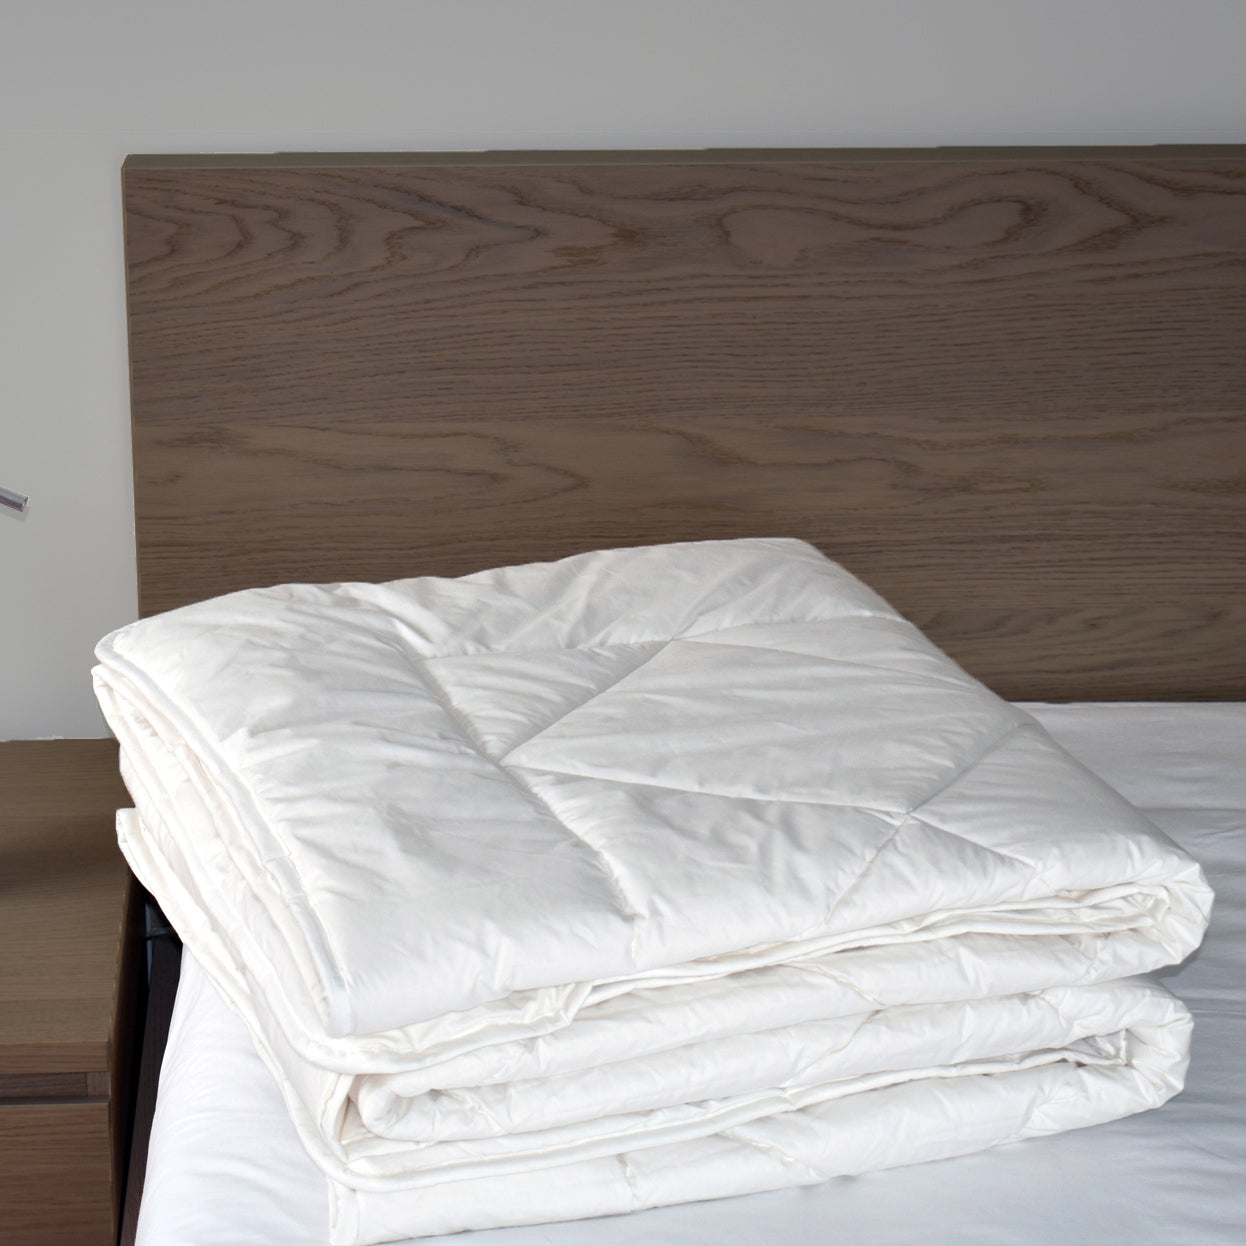 Wool Comforter, Twin - AVAILABLE FOR SHIPMENT IN CANADA ONLY